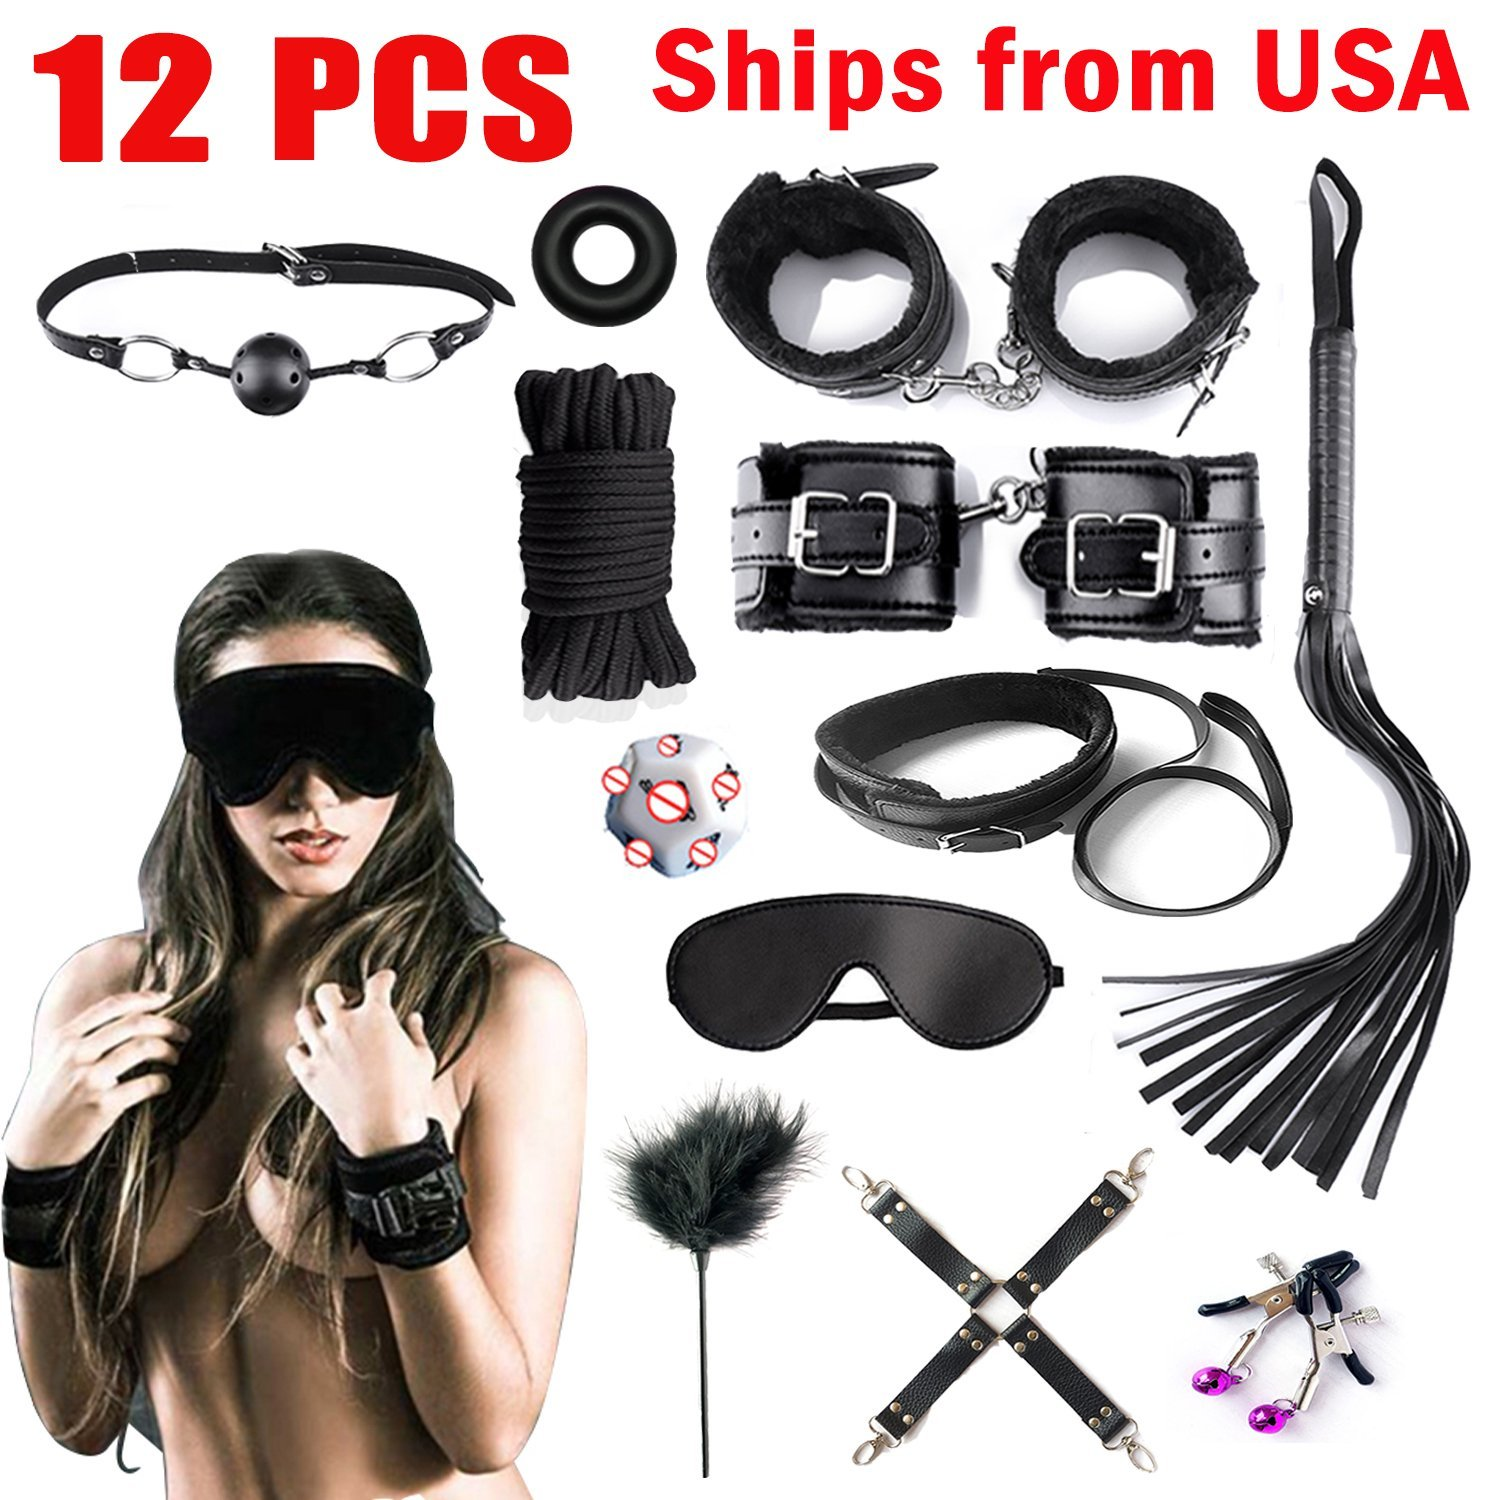 Handcuffs for Under bed restraint Kit Bondage Bondageromance Fetish Sex Play BDSM SM Restraining Straps Thigh Game Tie up Mattress Harness Things Blindfold Whips Toys Adults Women sdve by ALUTT